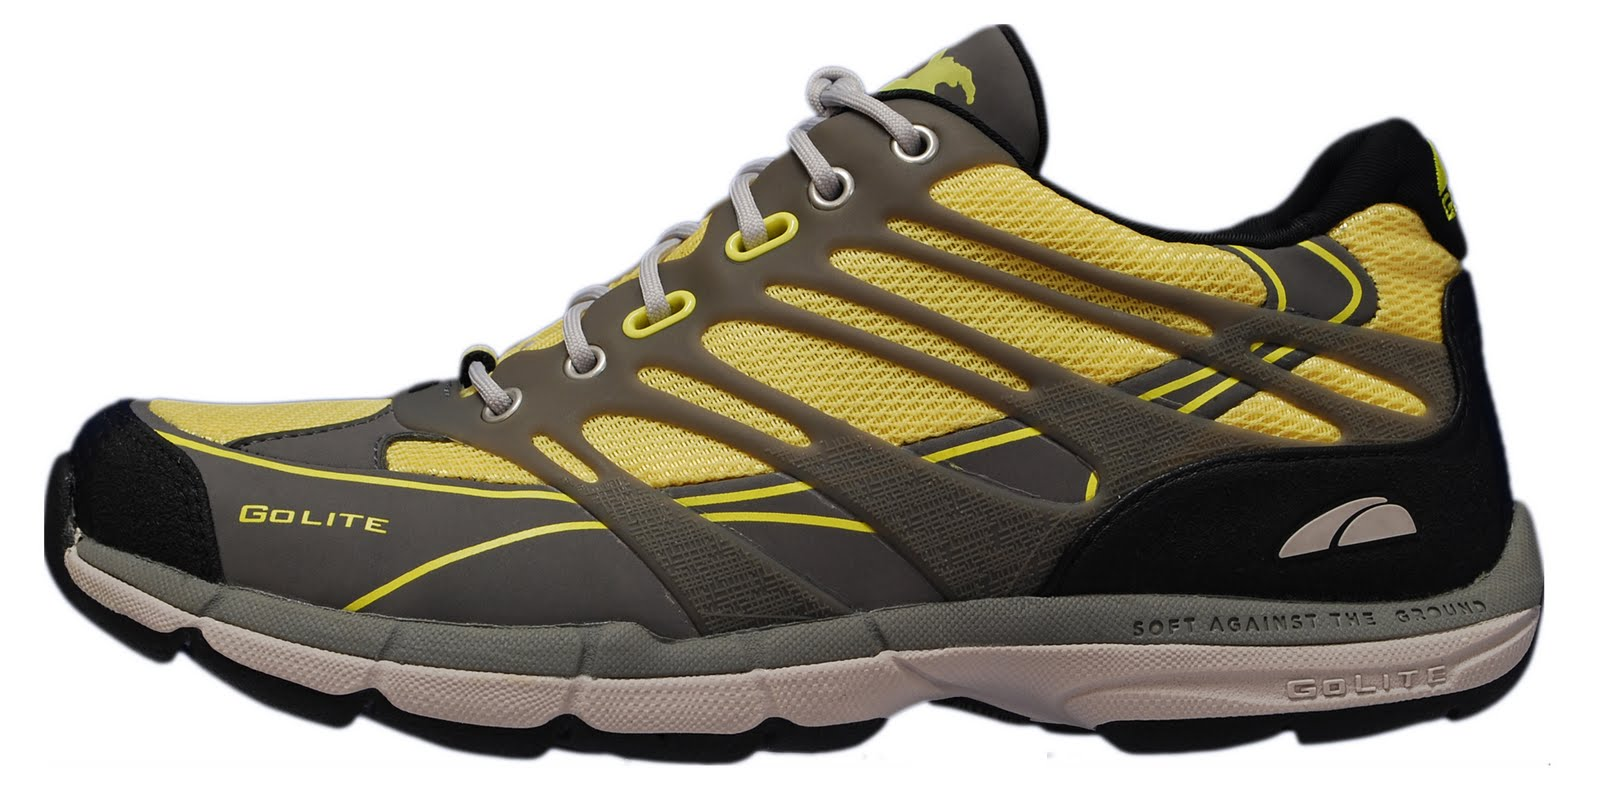 Best Shoe For Waterproof Hiking Shoes